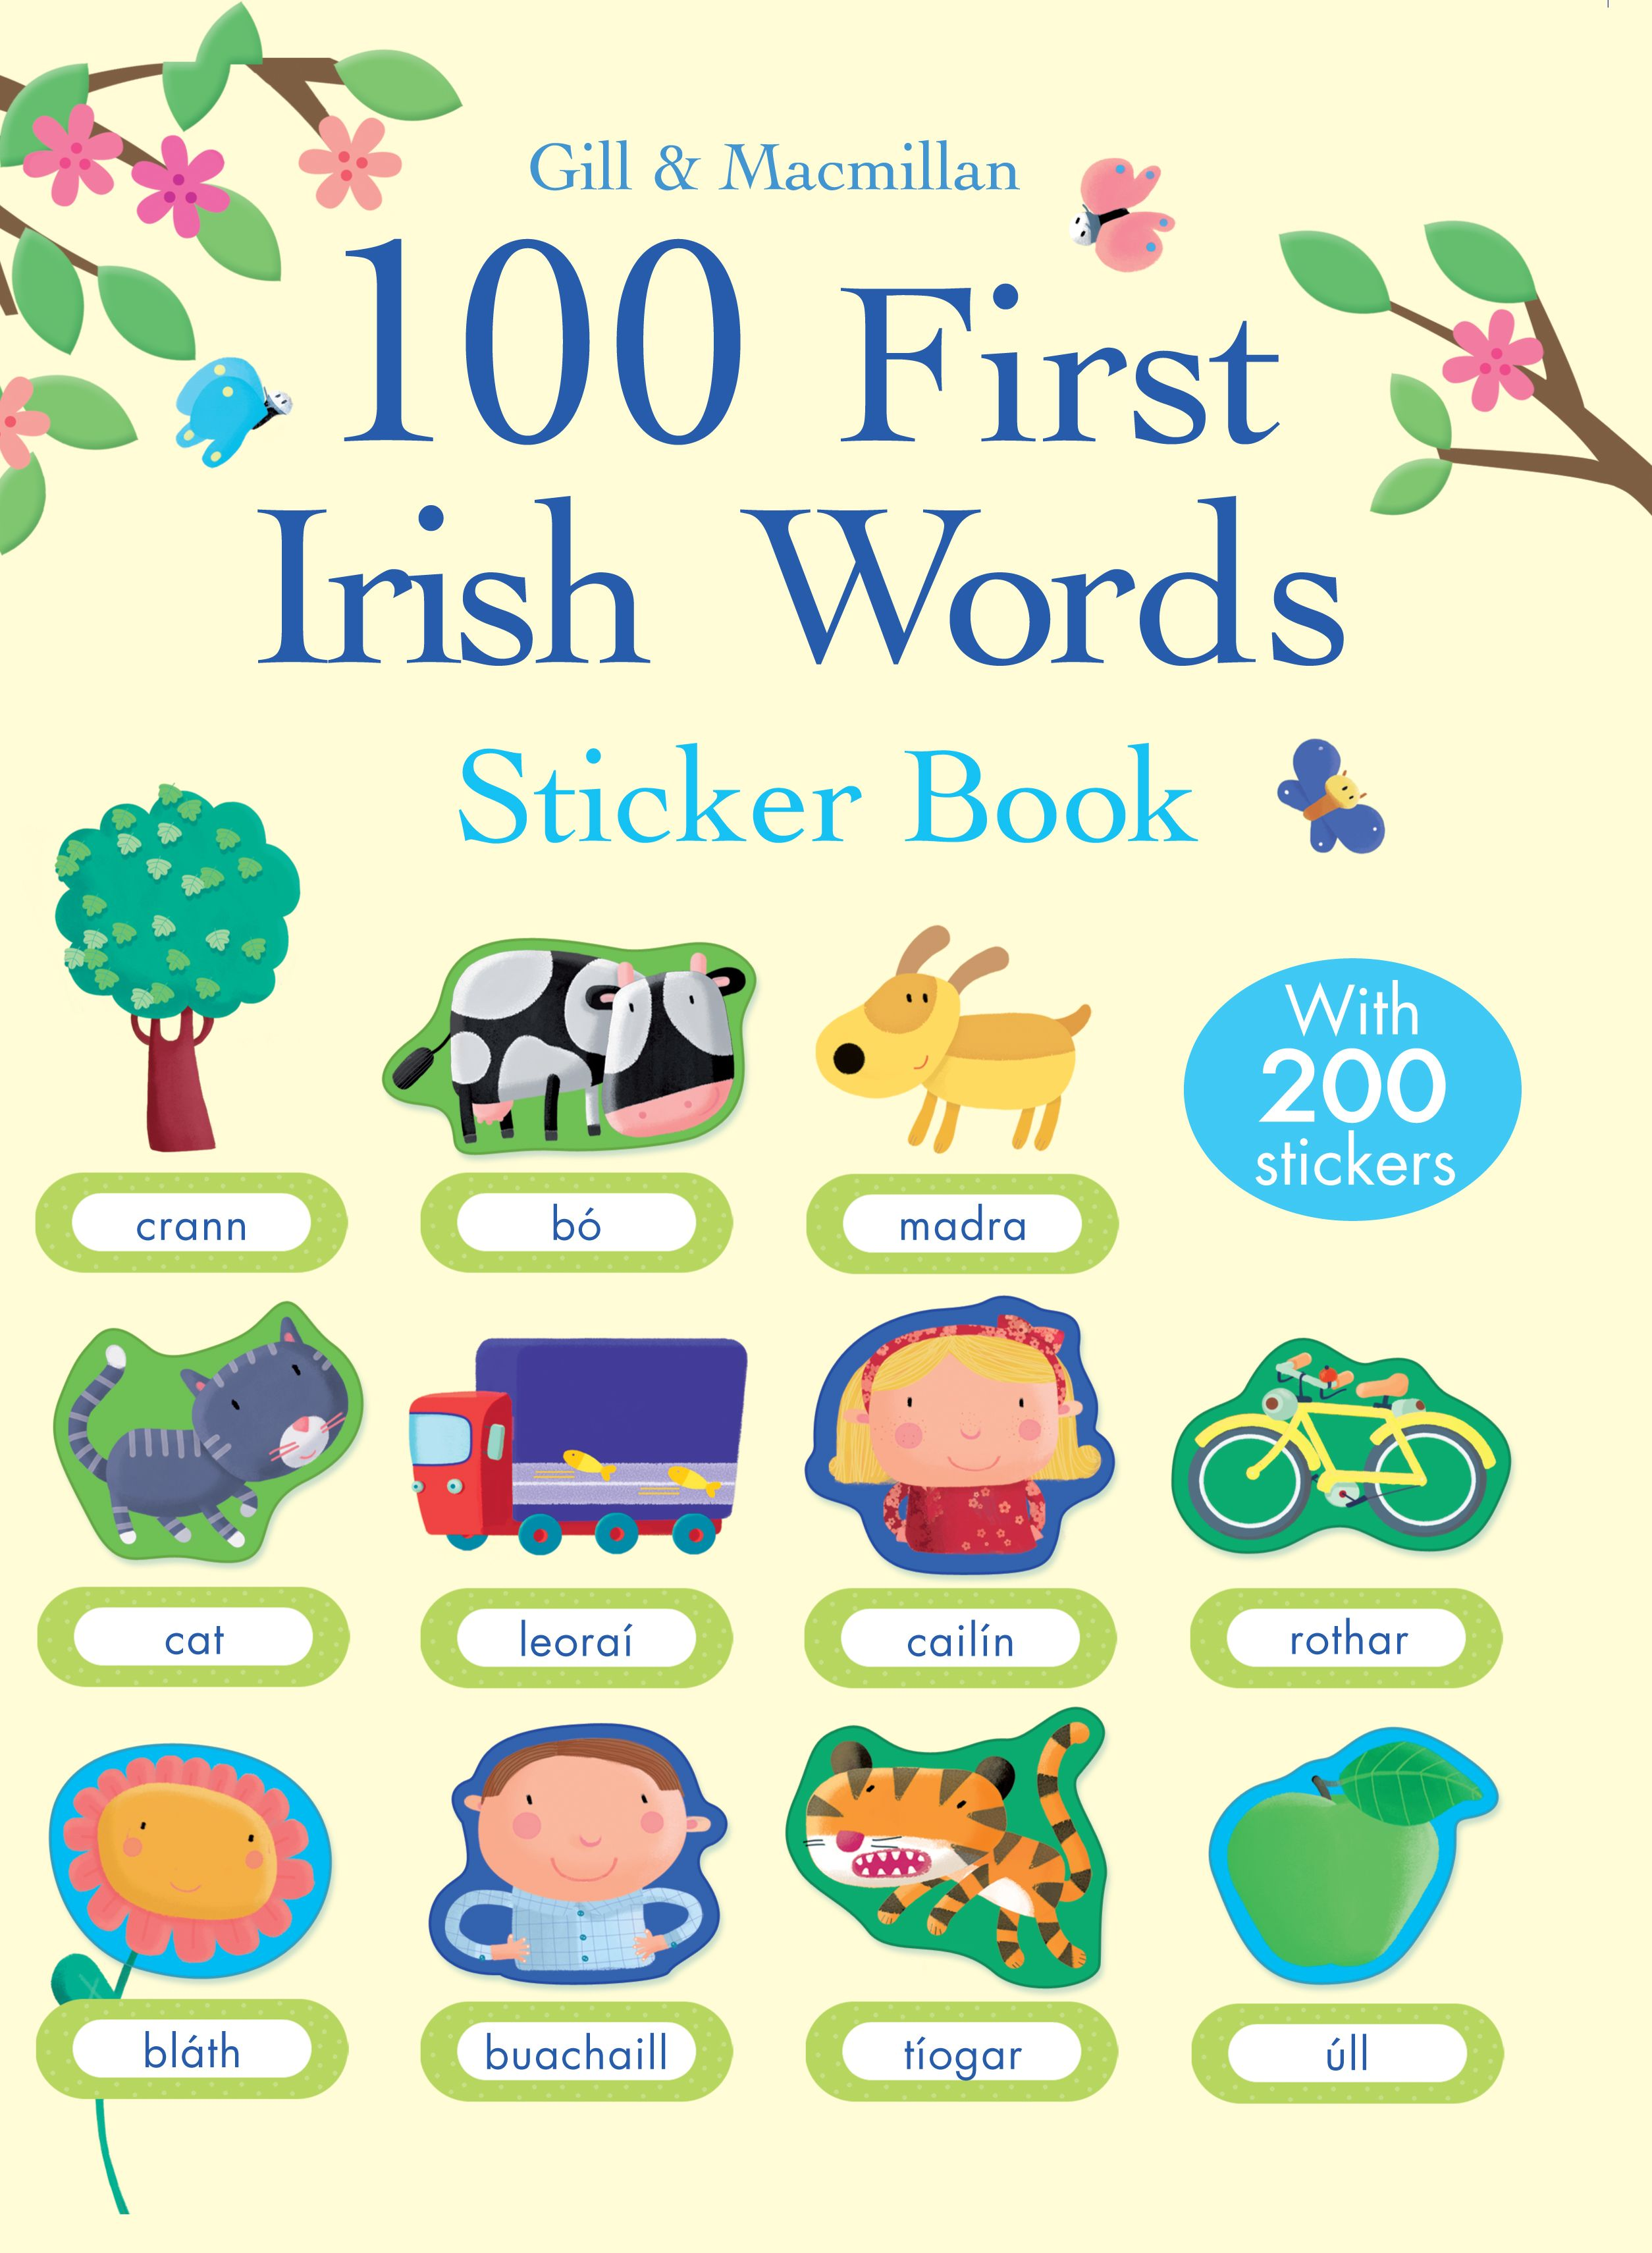 100 First Irish Words Sticker Book Illustrated By